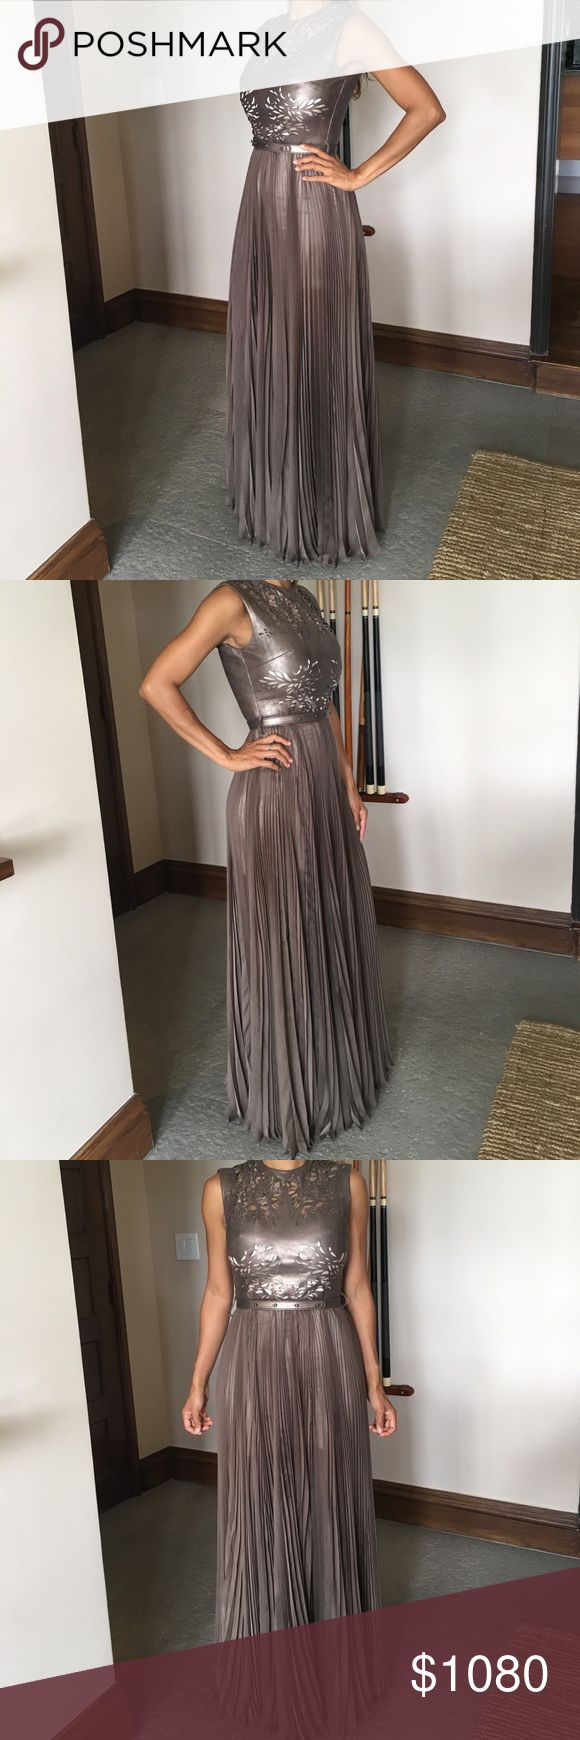 Laser cut Leather and Silk Chiffon Gown Dress Only one time used for a wedding. Perfect wedding guest. Bronze color. Belt. 50% off. Believe me you will be the sensation of the gala! Catherine Deane Dresses Wedding